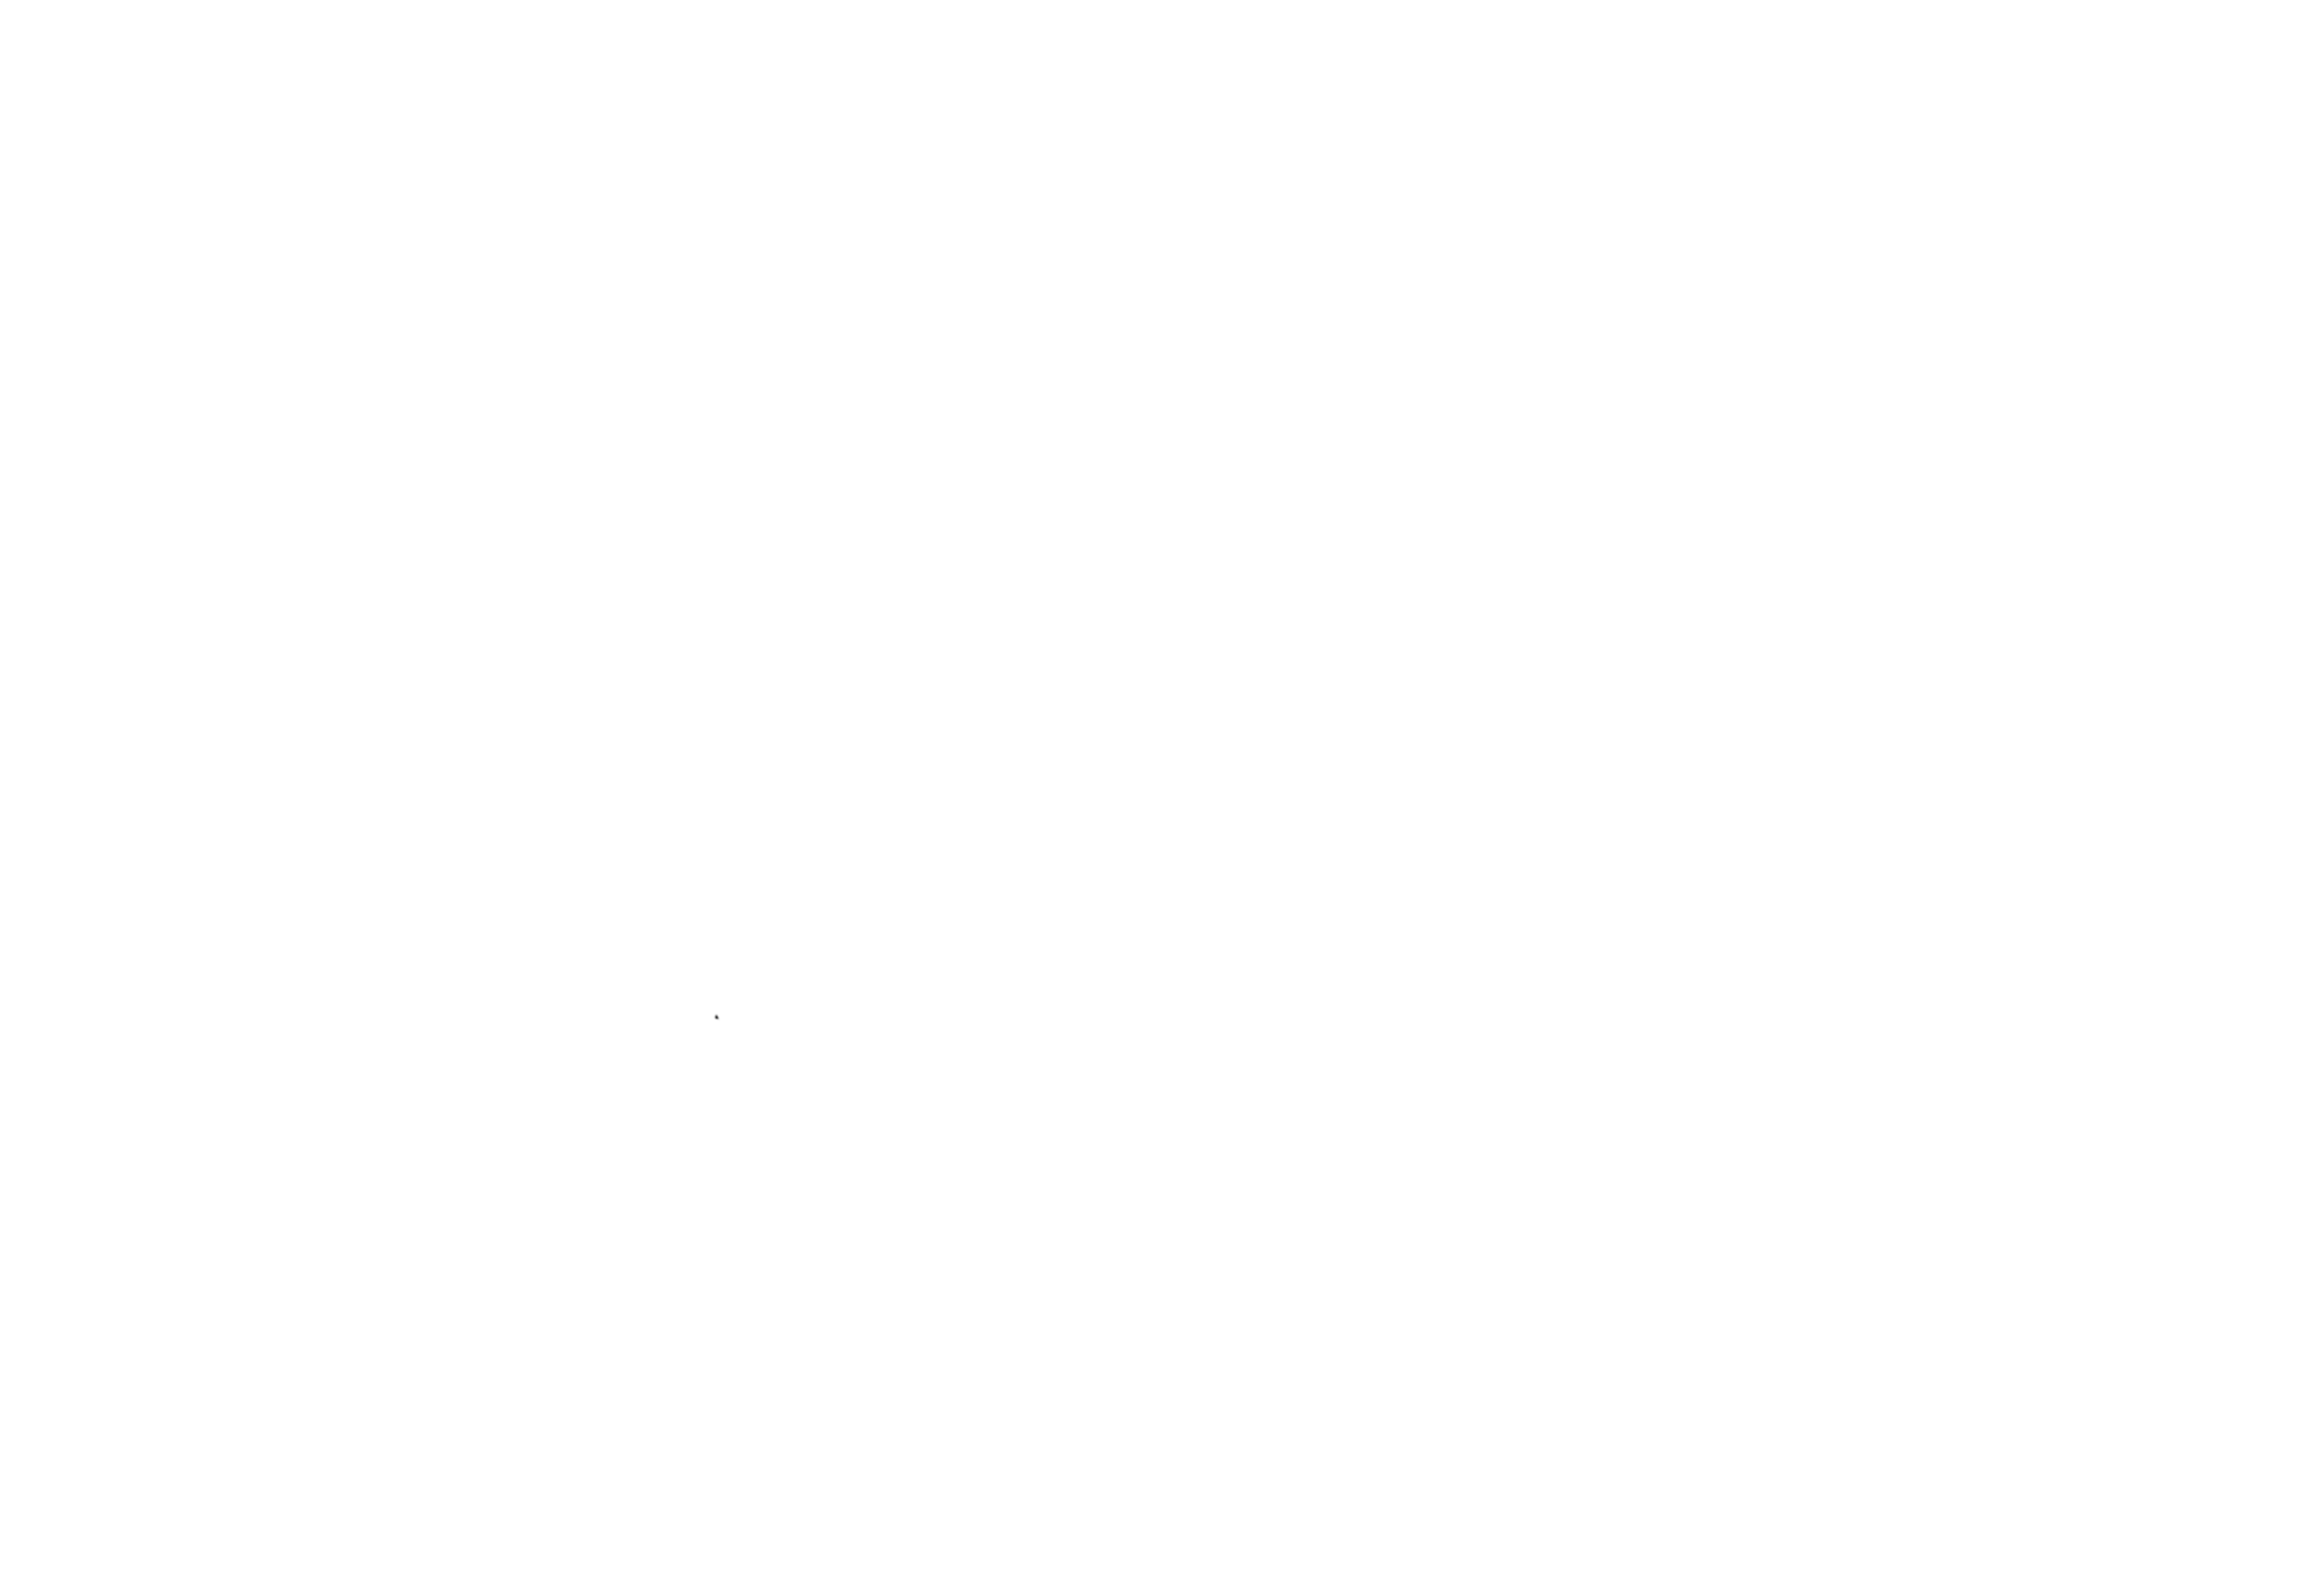 New York Lift-Off Film Festival Online 2019 - Official Selection Laurel (white).png